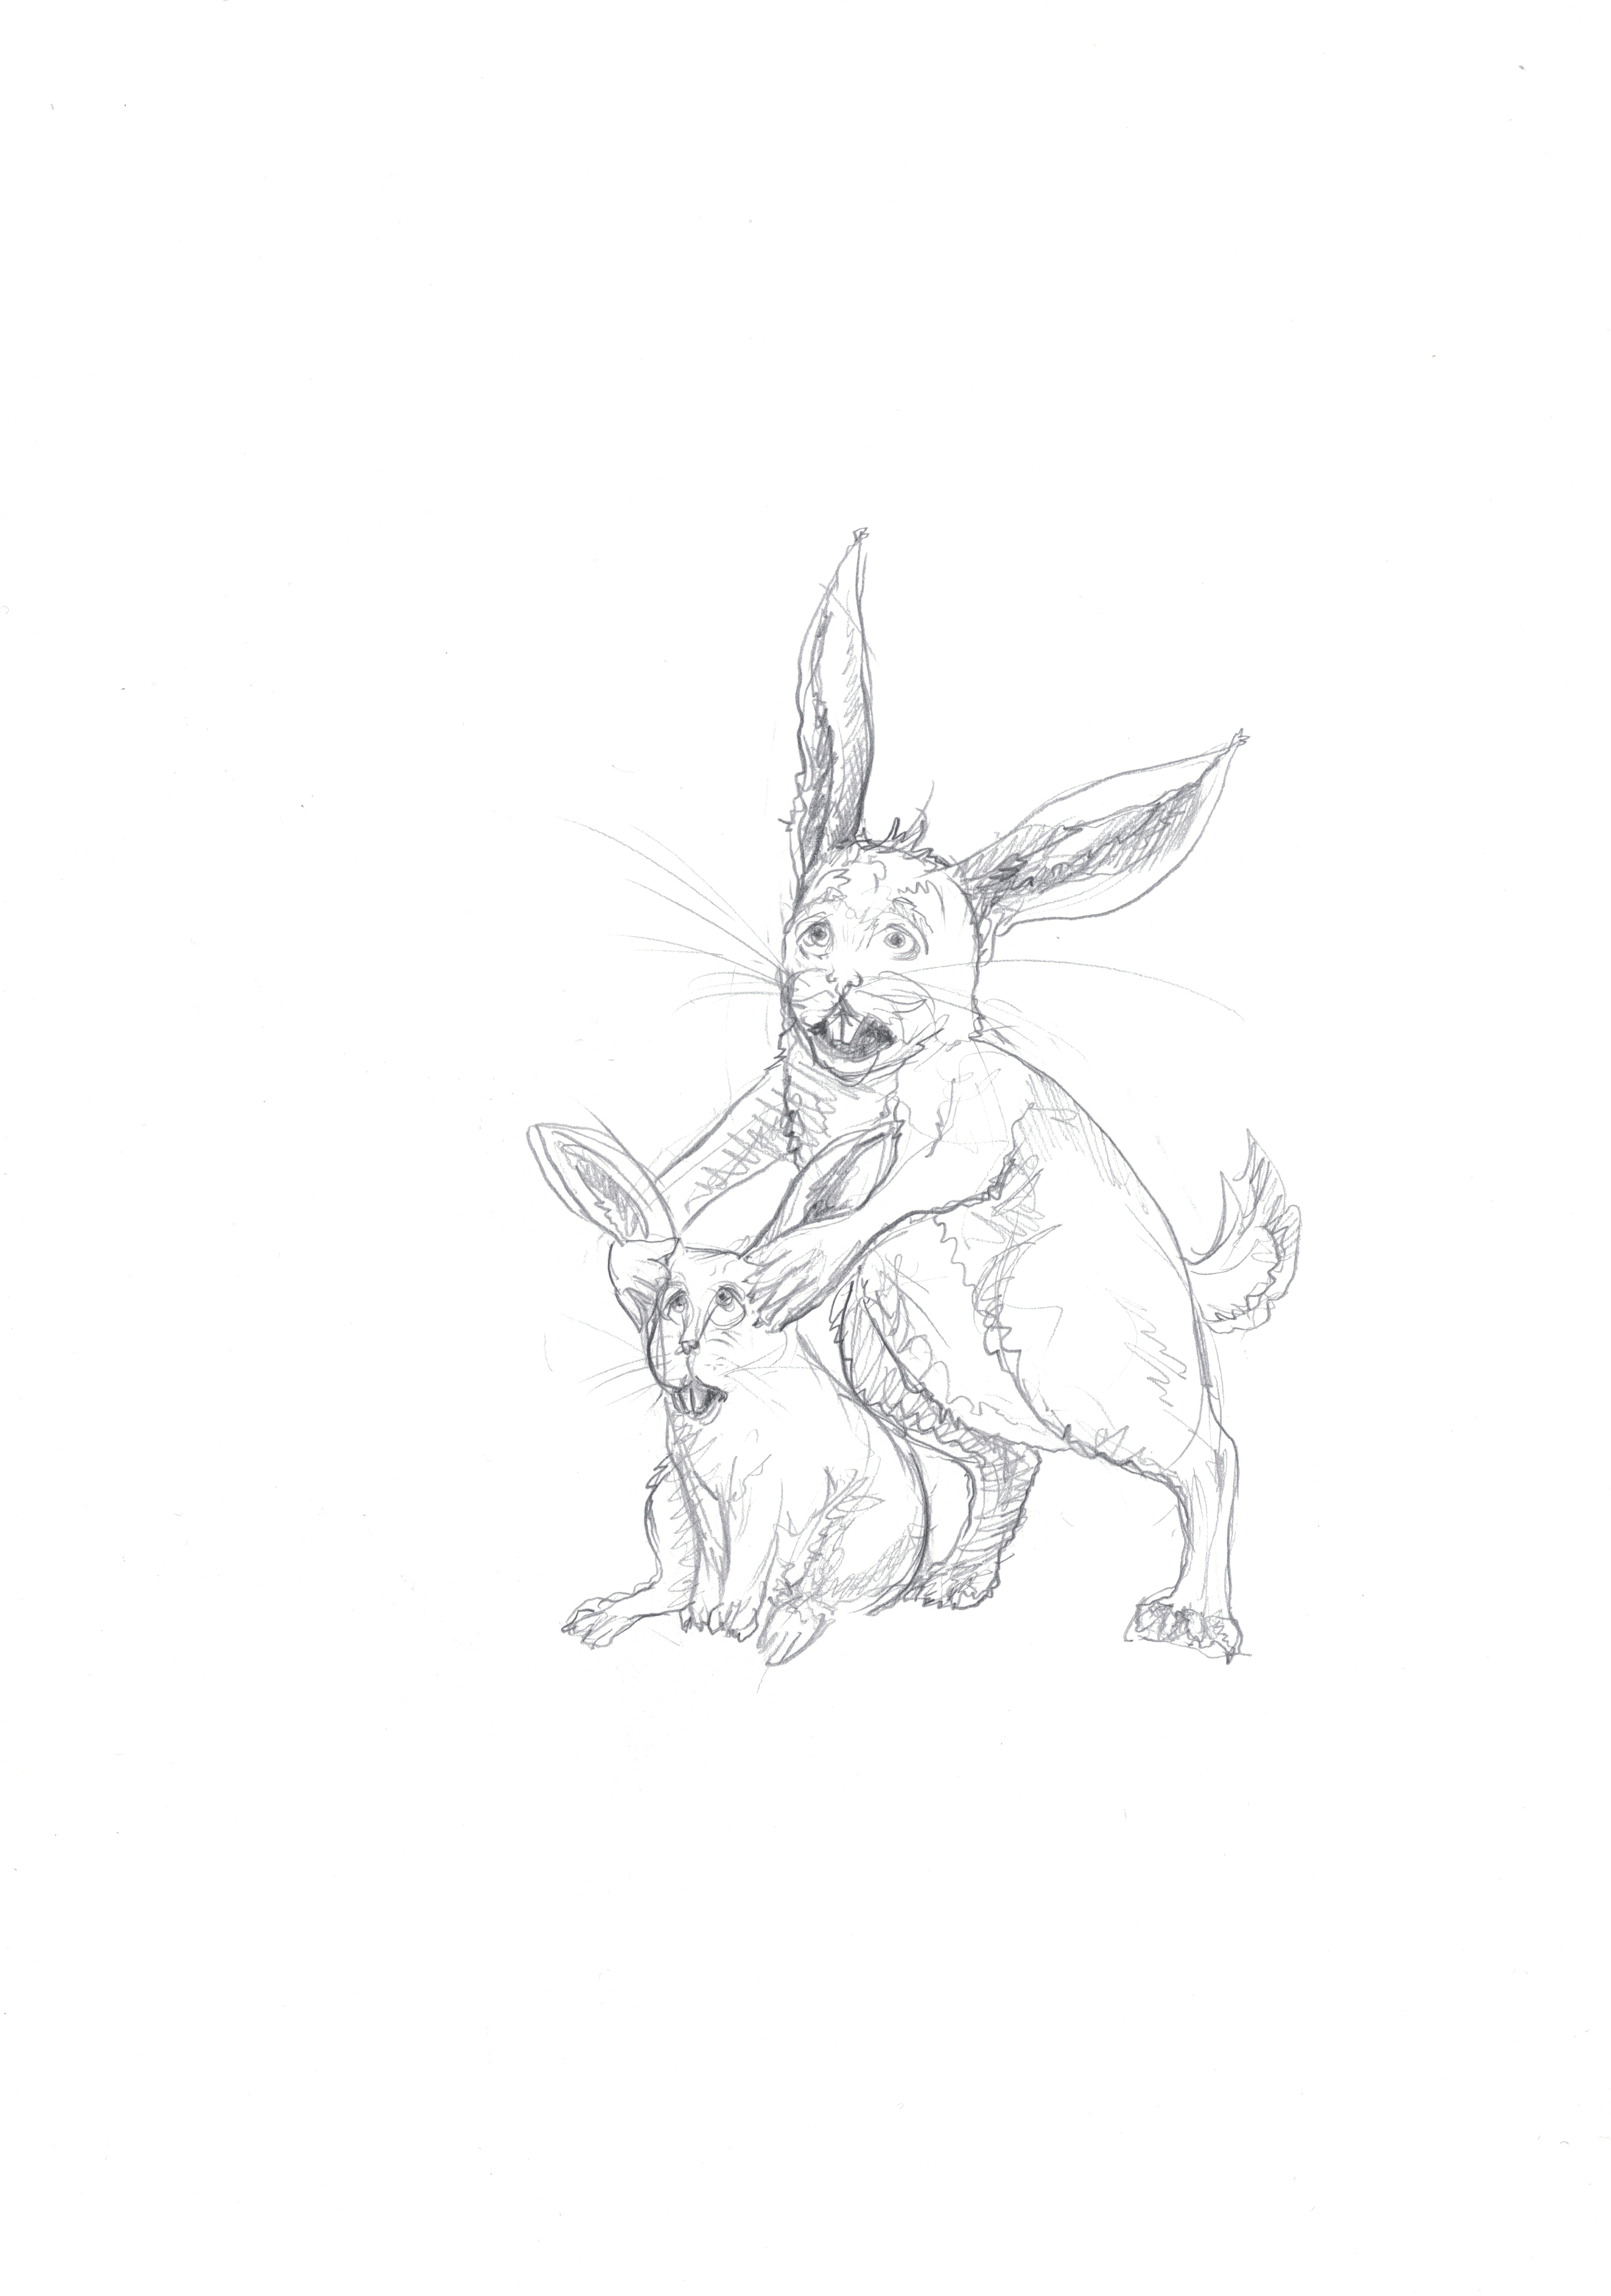 Rabbits disturbed by noise